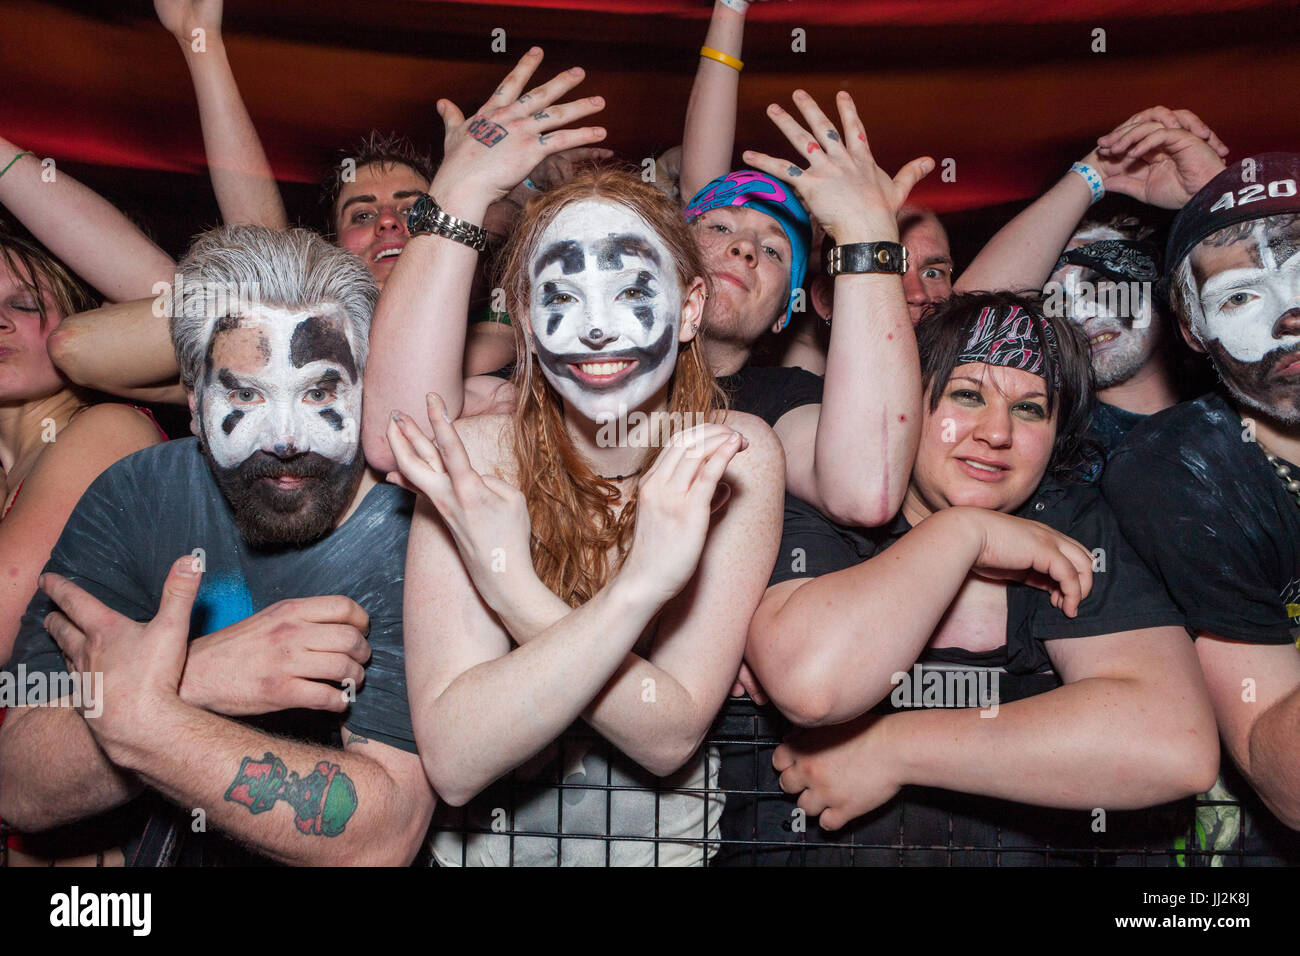 Eighth (Insane Clown Posse Fans) bei einem ICP-Konzert im Adler/Rave Club in Milwaukee, Wisconsin. Stockbild